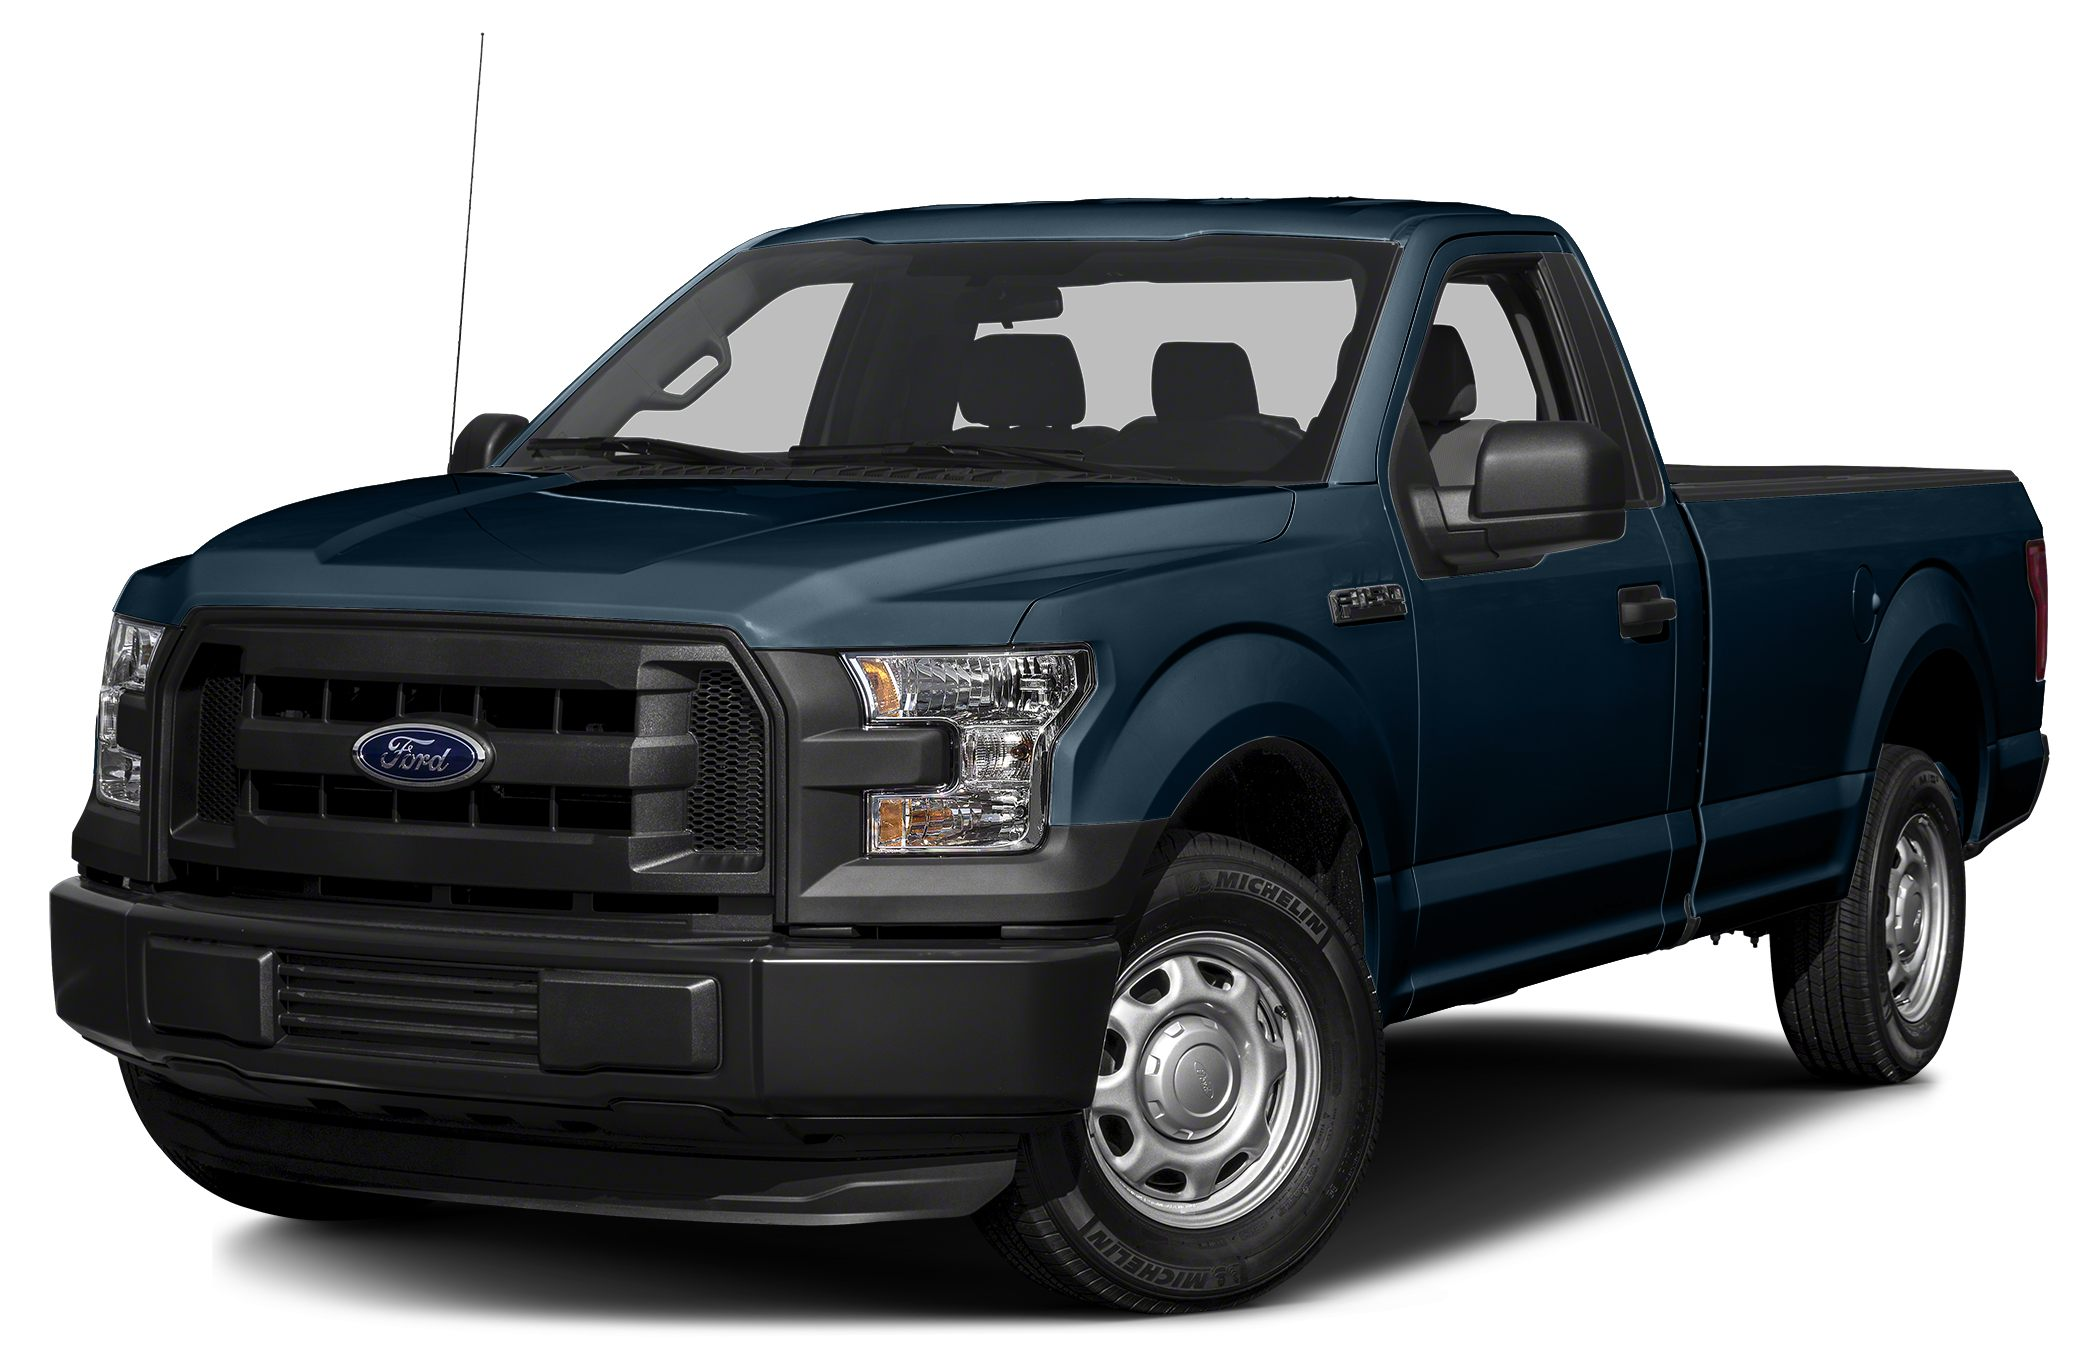 2017 Ford F-150 XL 2017 Ford F-150 XL ABS brakes Electronic Stability Control Fog Lamps Front